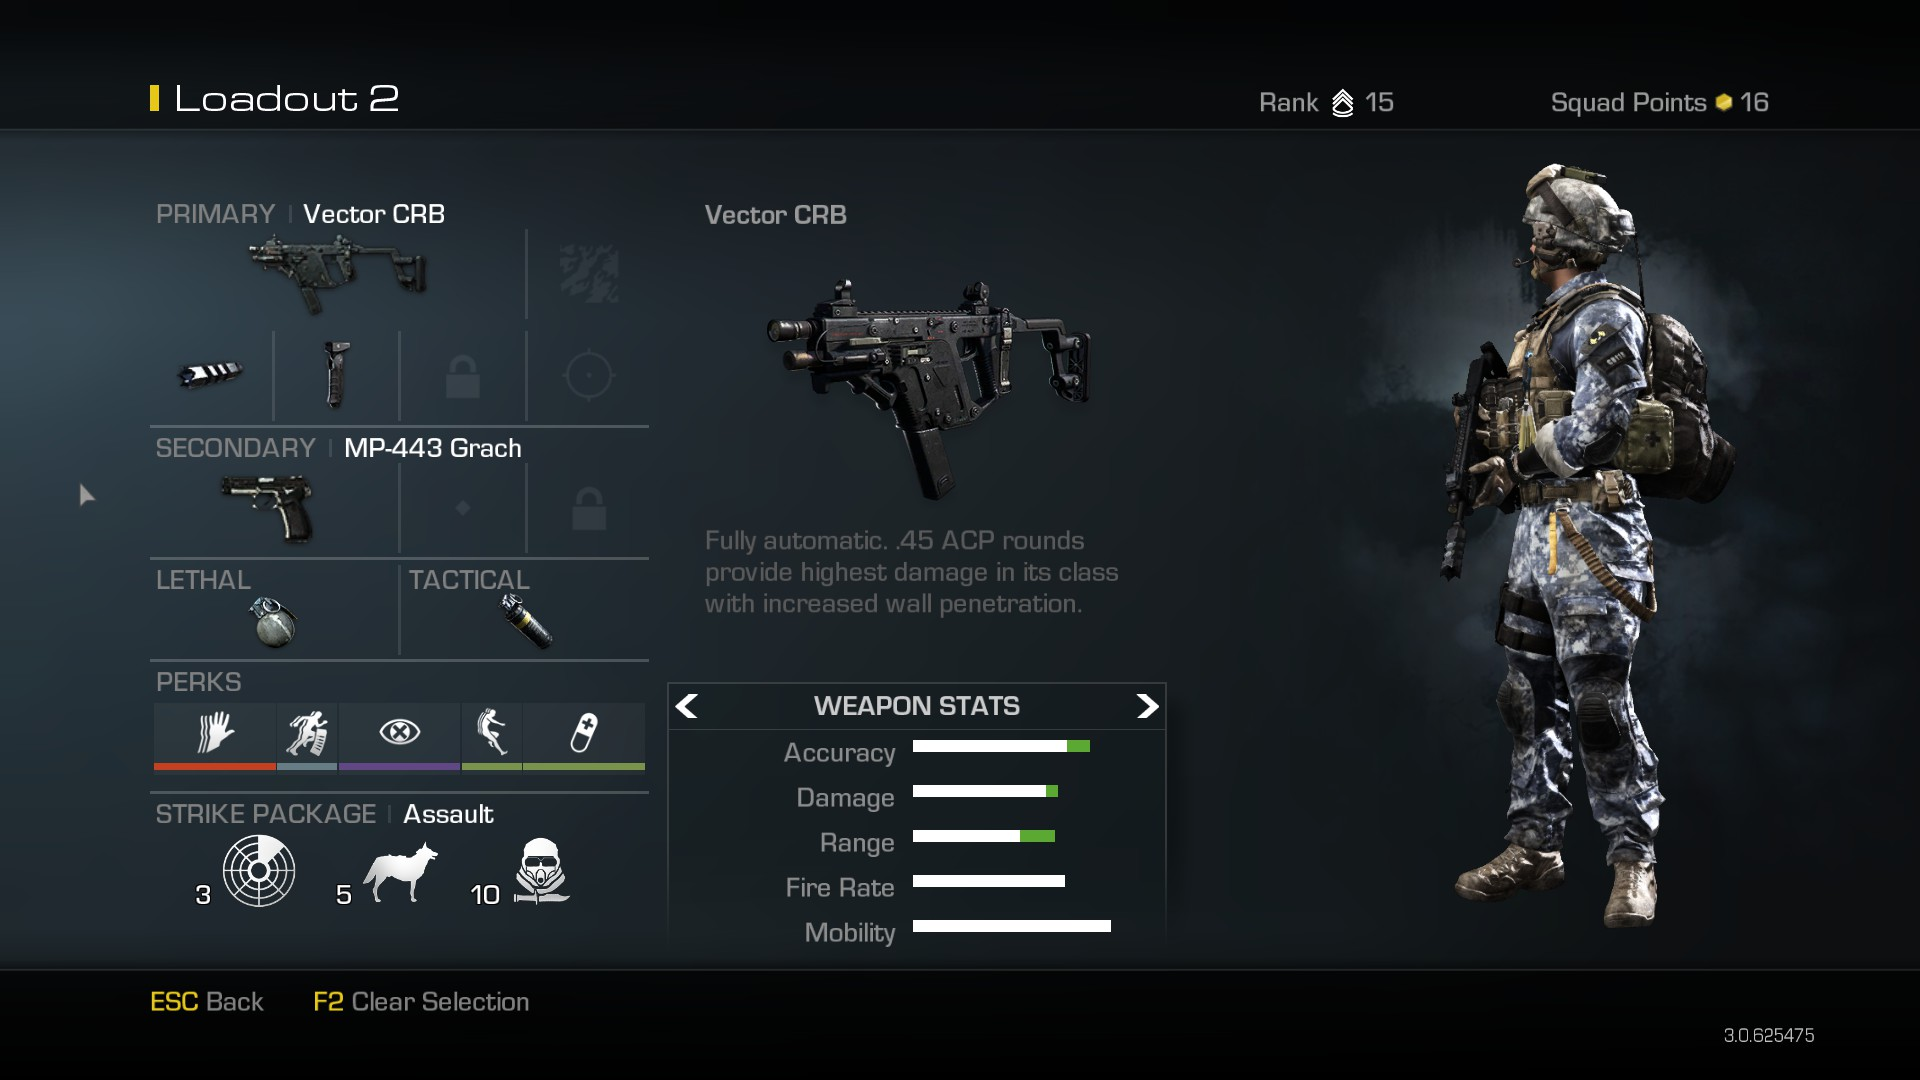 Vector CRB Submachine Gun Weapon Guide Call of Duty Ghosts